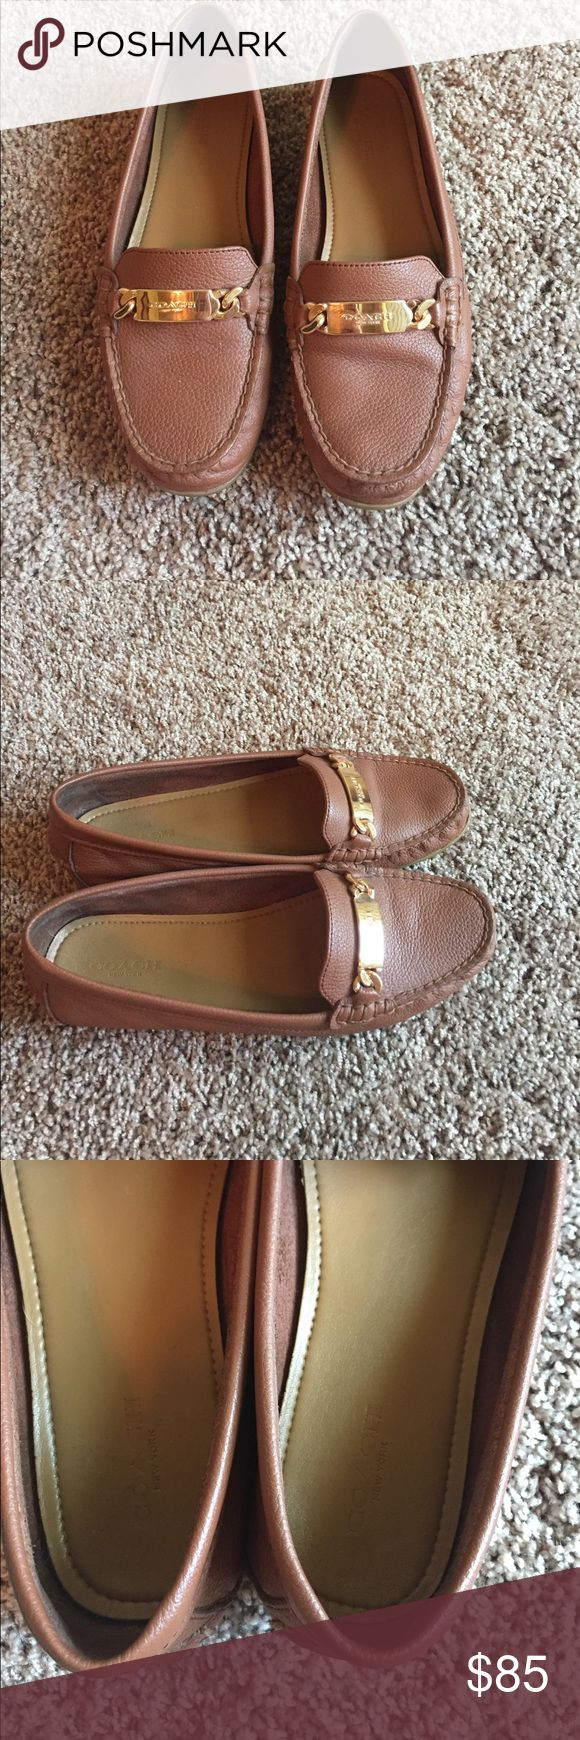 Coach luggage loafers, sz 8 Like new, only worn a couple times.  *make me an offer, need these gone! Coach Shoes Flats & Loafers